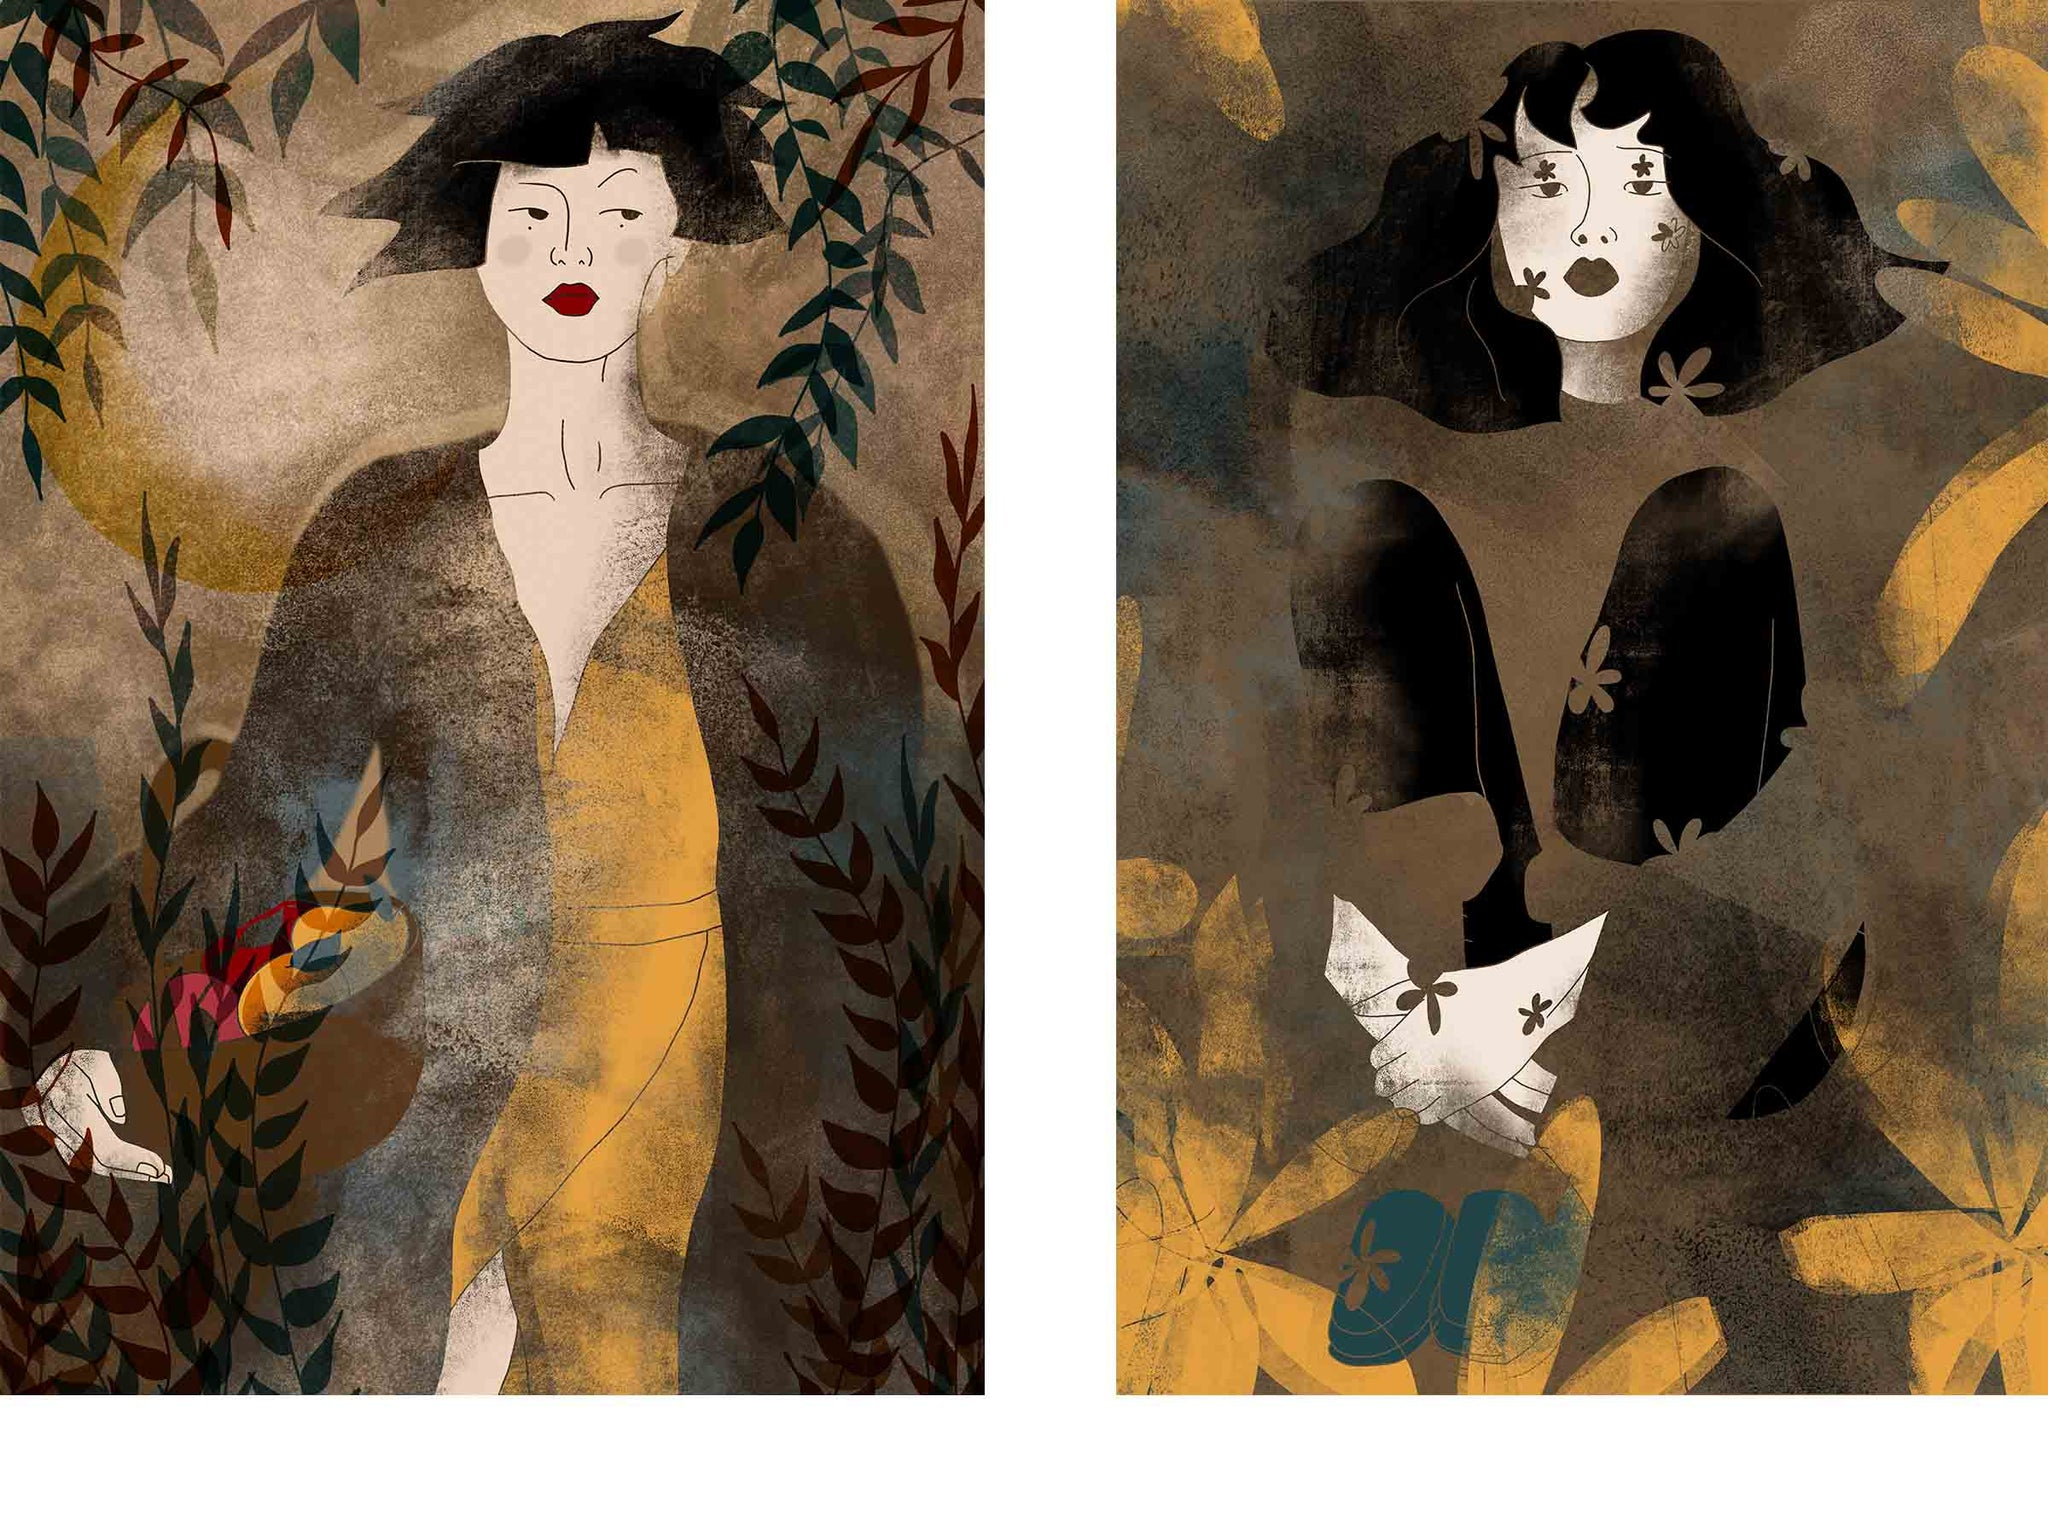 two separate stylized illustrated female portraits, both surrounded with flowers, the one on the left has a basket of fruit in her hand, the one on the right is Asian and is sitting on a small wooden chair